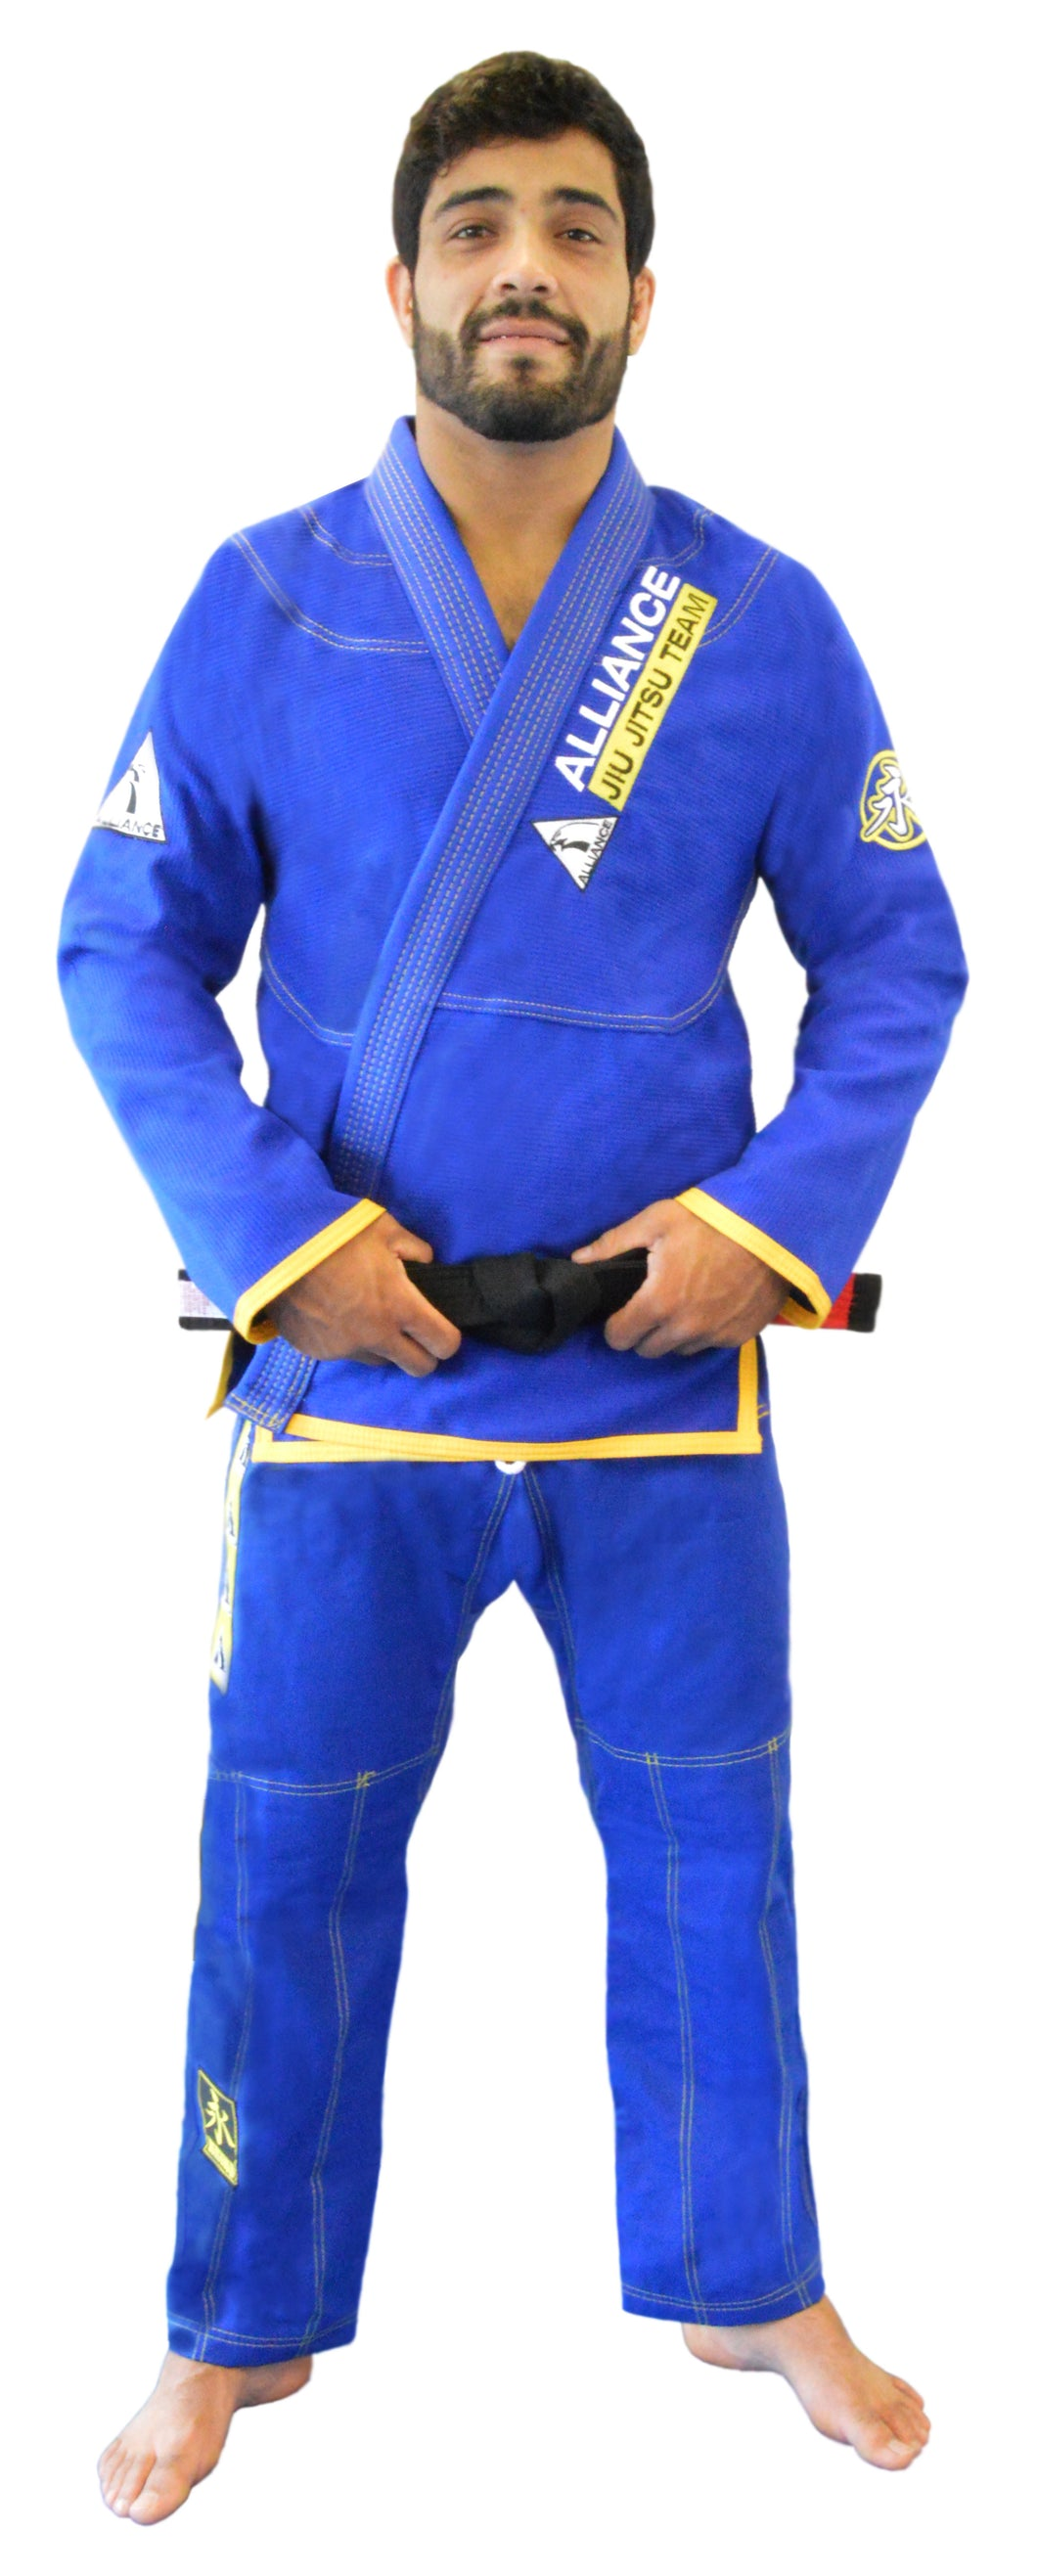 Alliance Slim Fit Gi - Blue